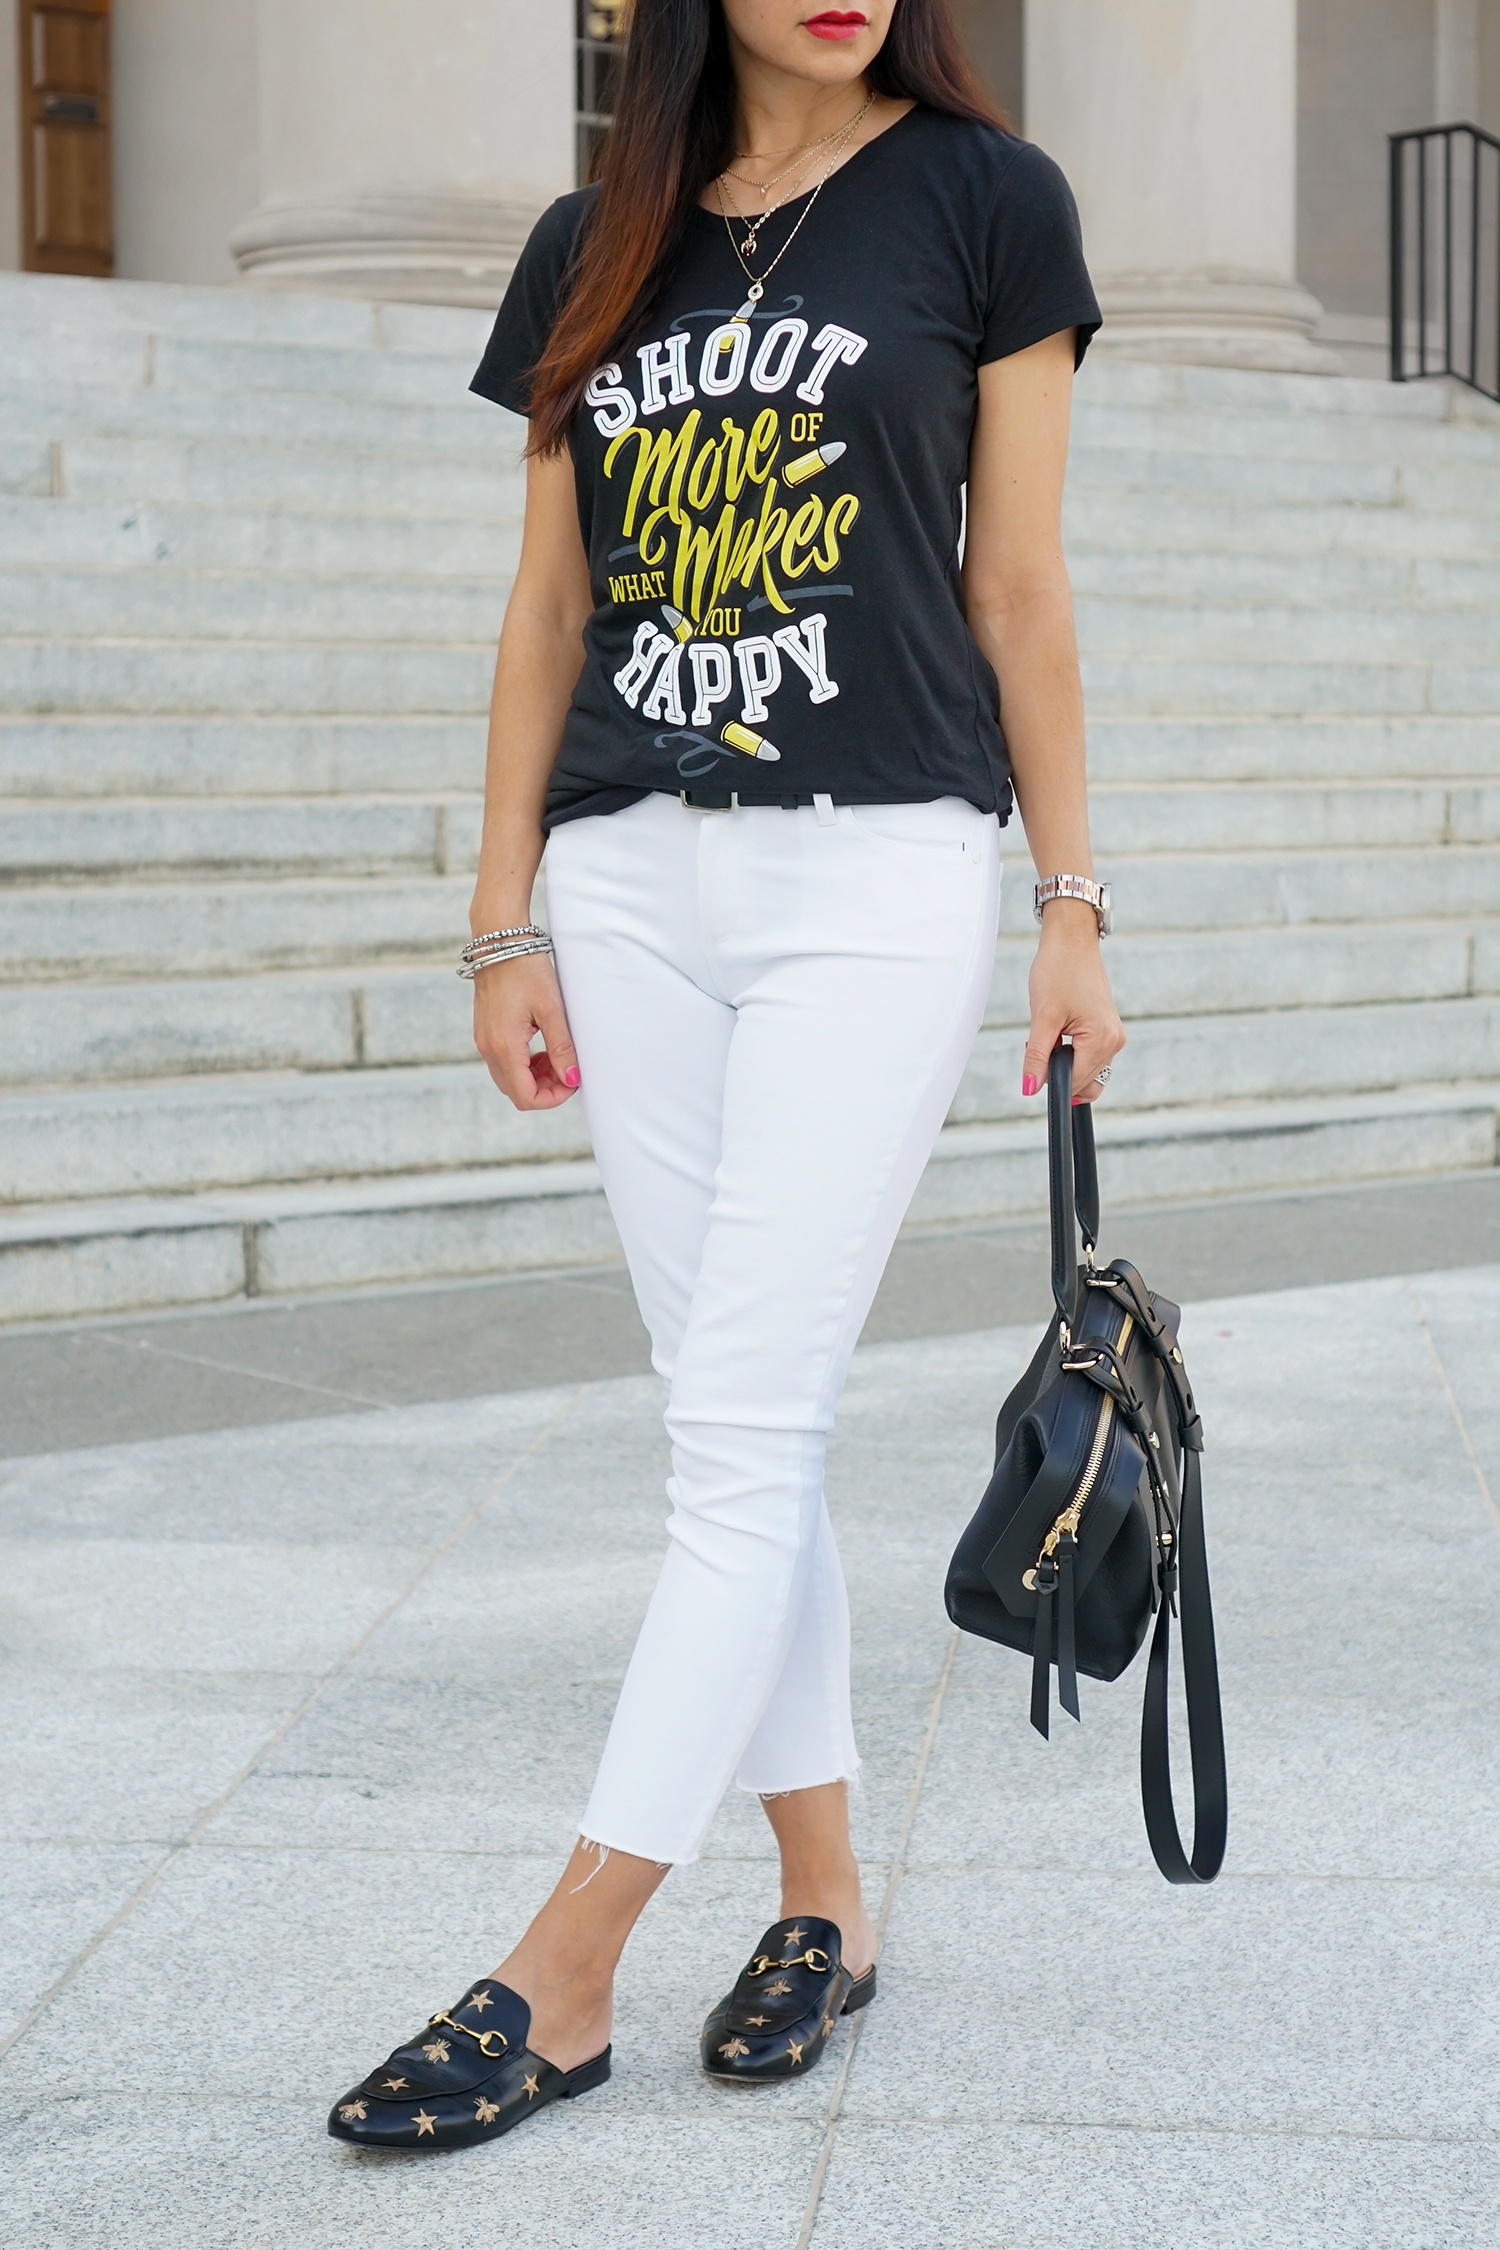 Cute Graphic Tees, Graphic Tee style